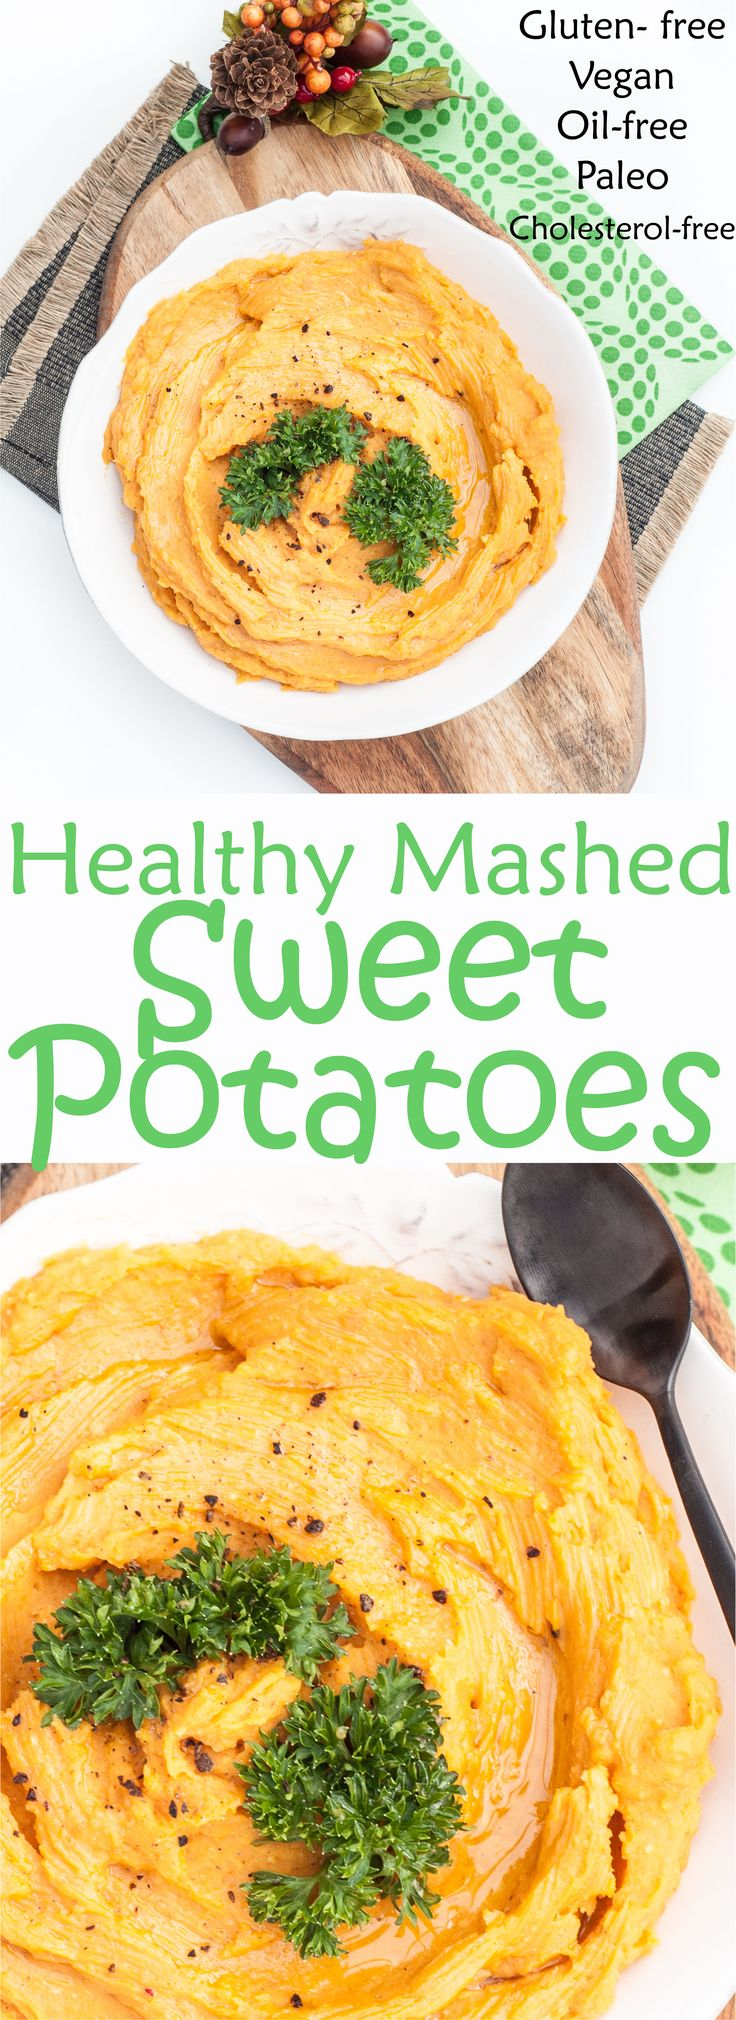 Can I store sweet potatoes and white potatoes together?